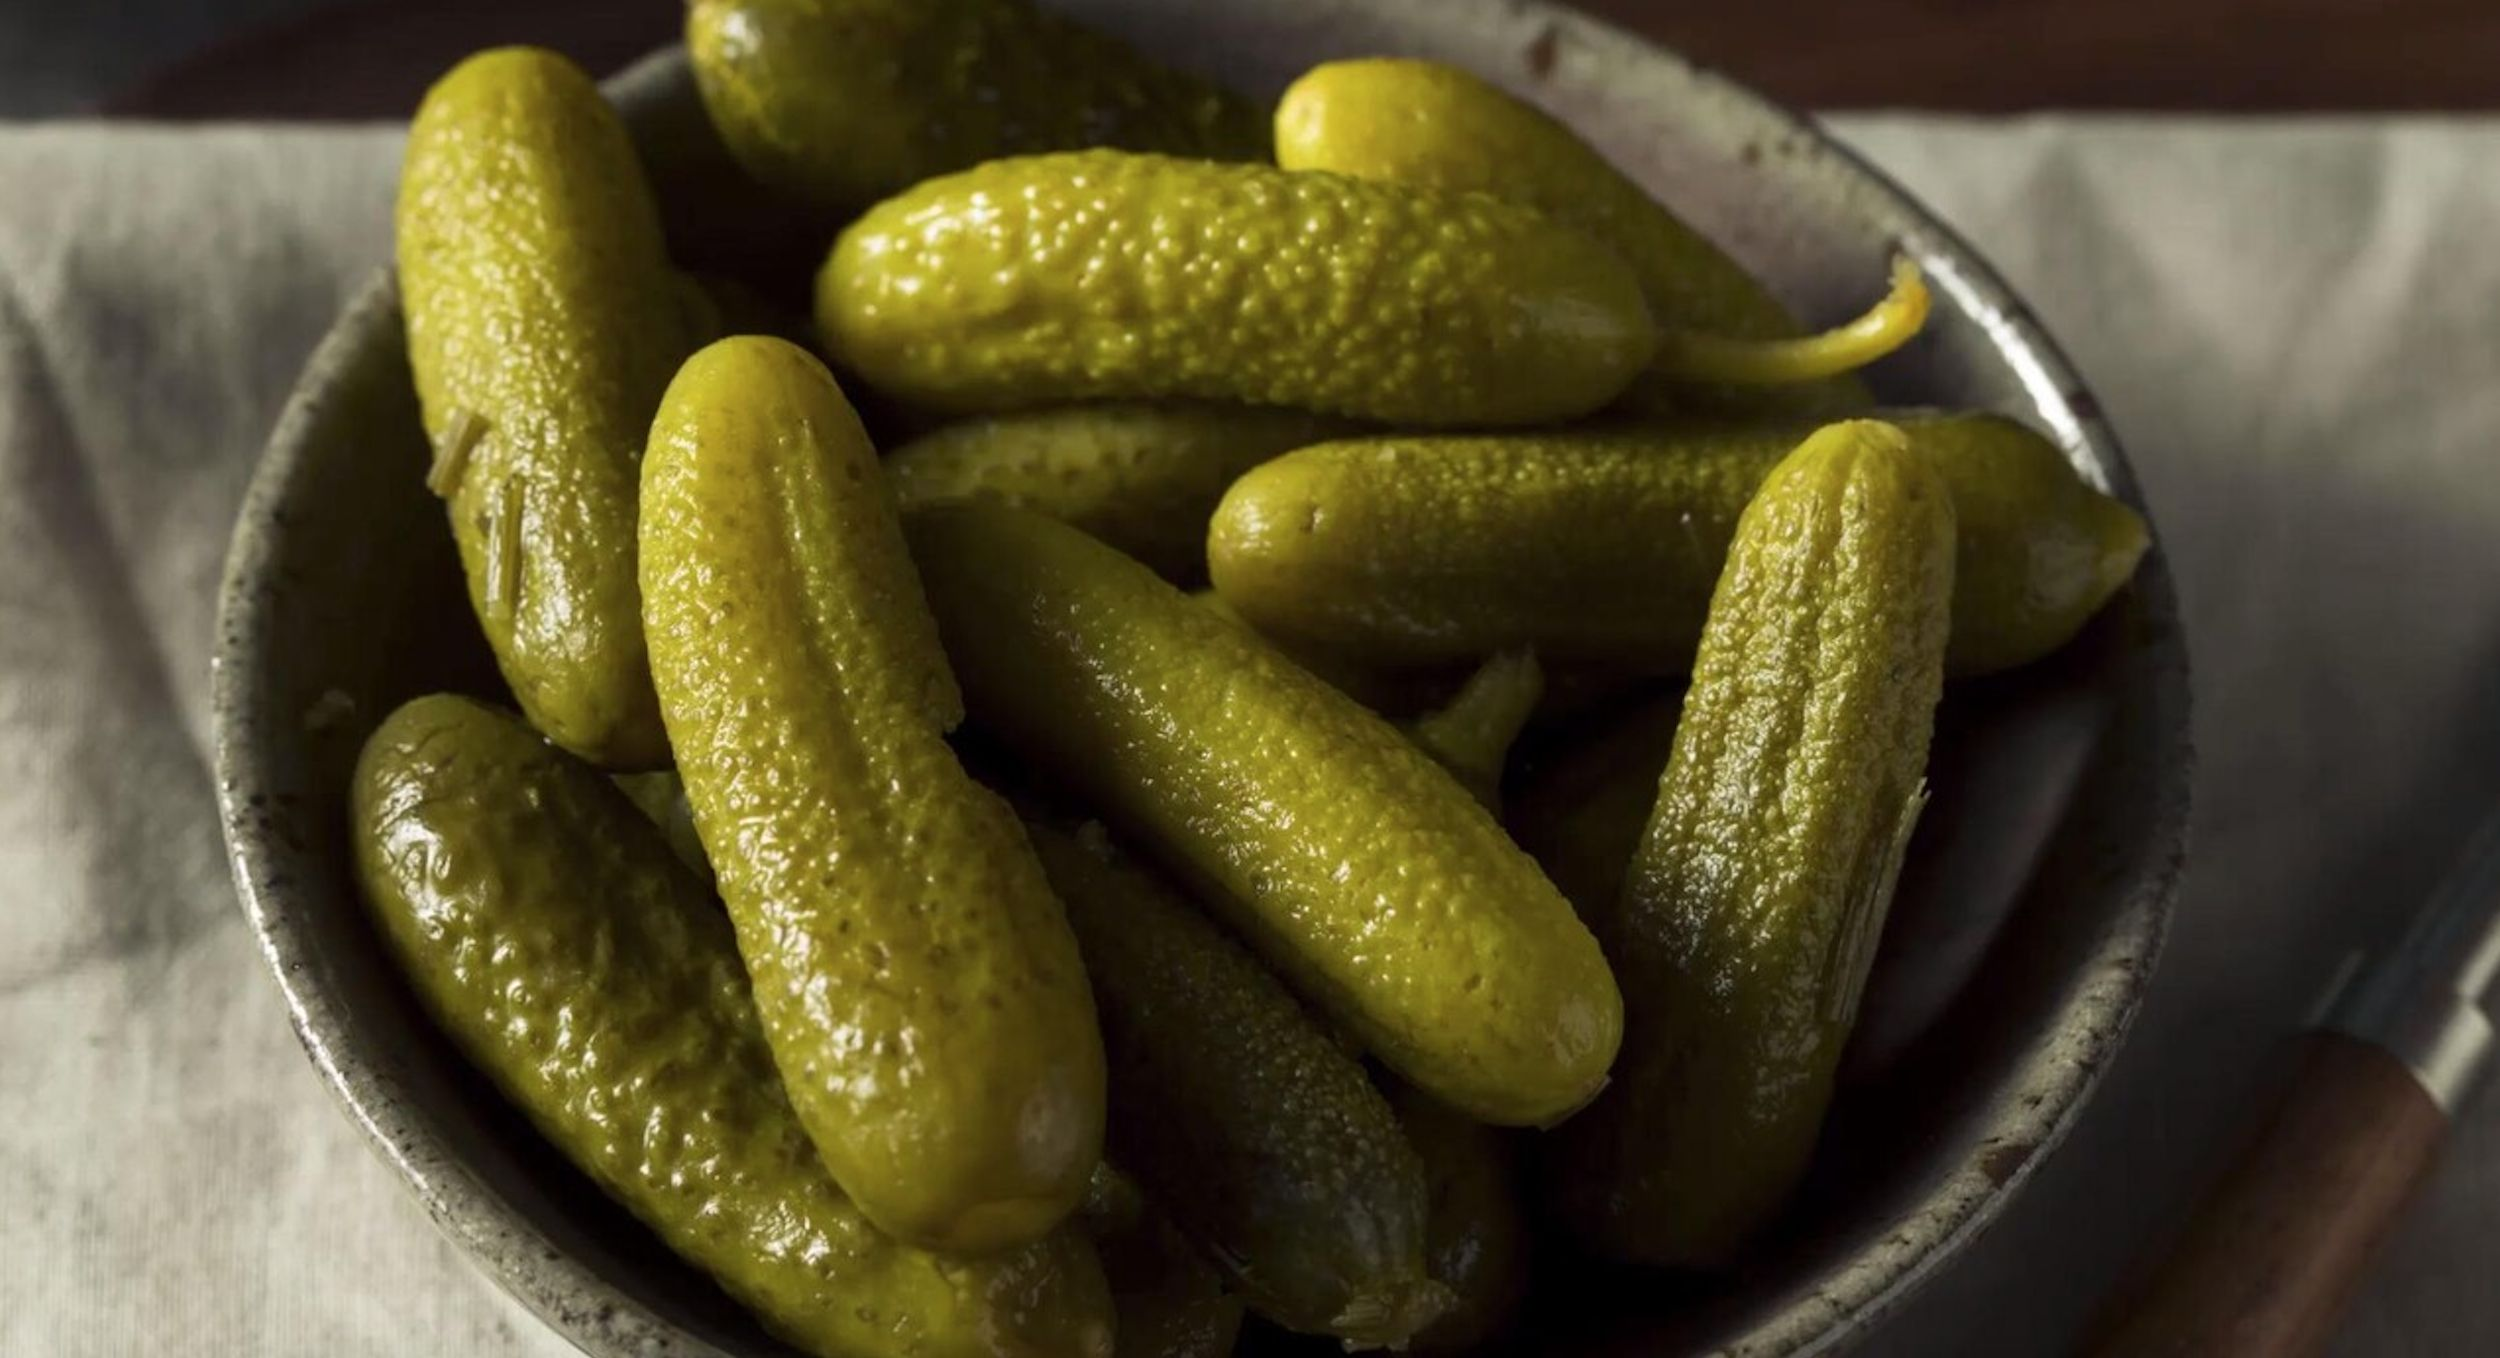 How to make pickles in under an hour